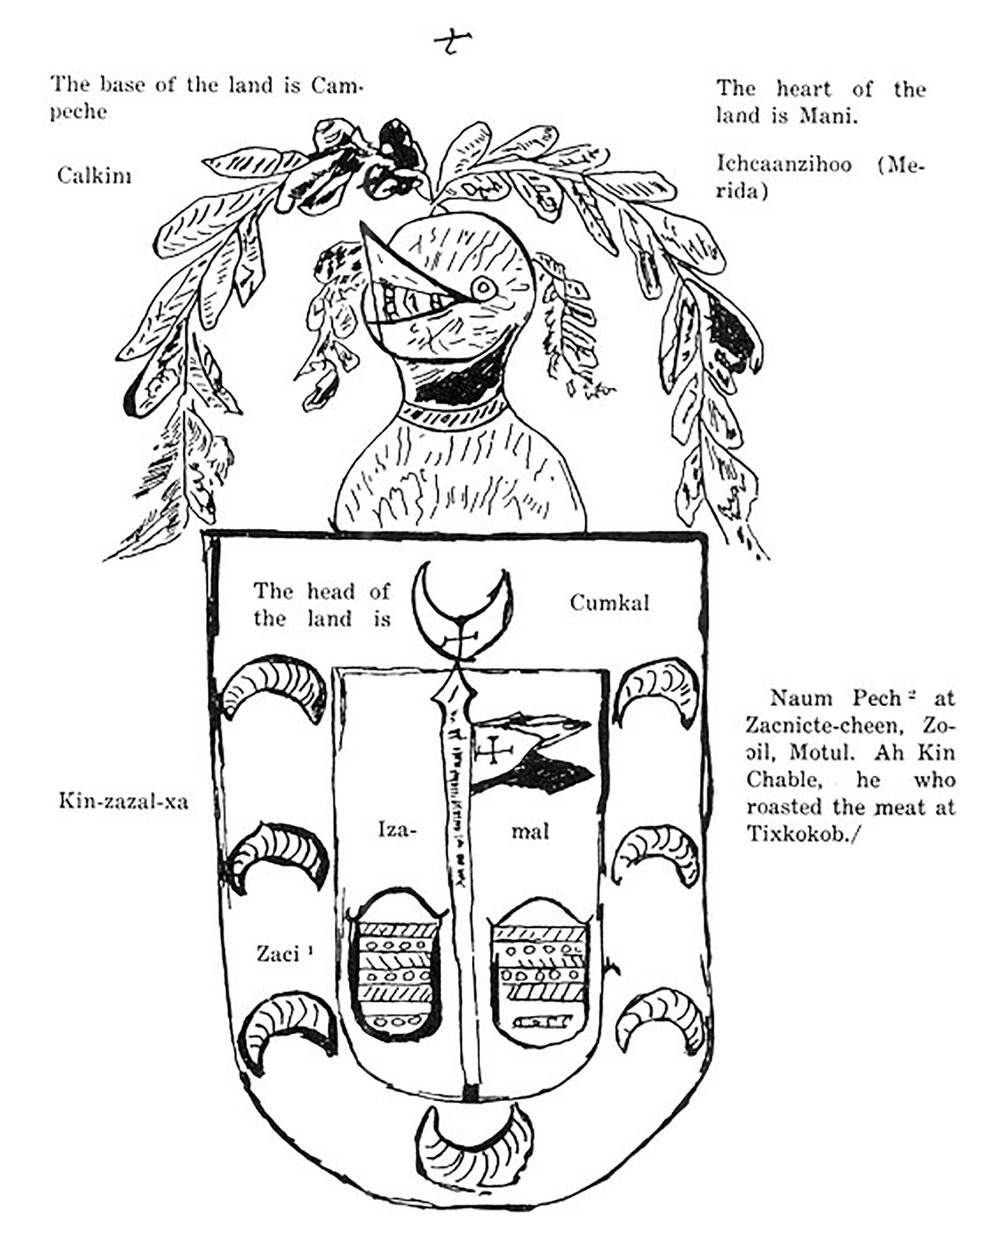 The armorial bearings of Yucatán, including Naum Pech reference. Source:  sacred-texts.com .